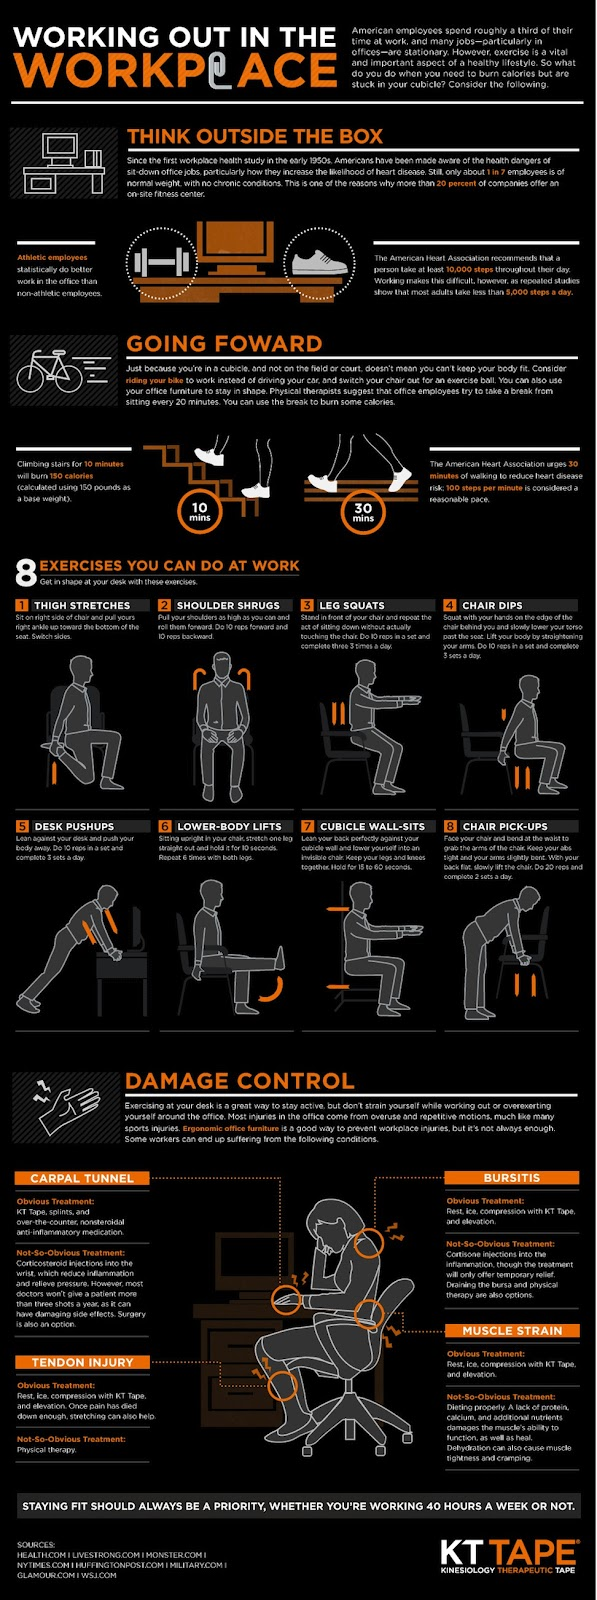 Working Out in The Workplace by Mashable